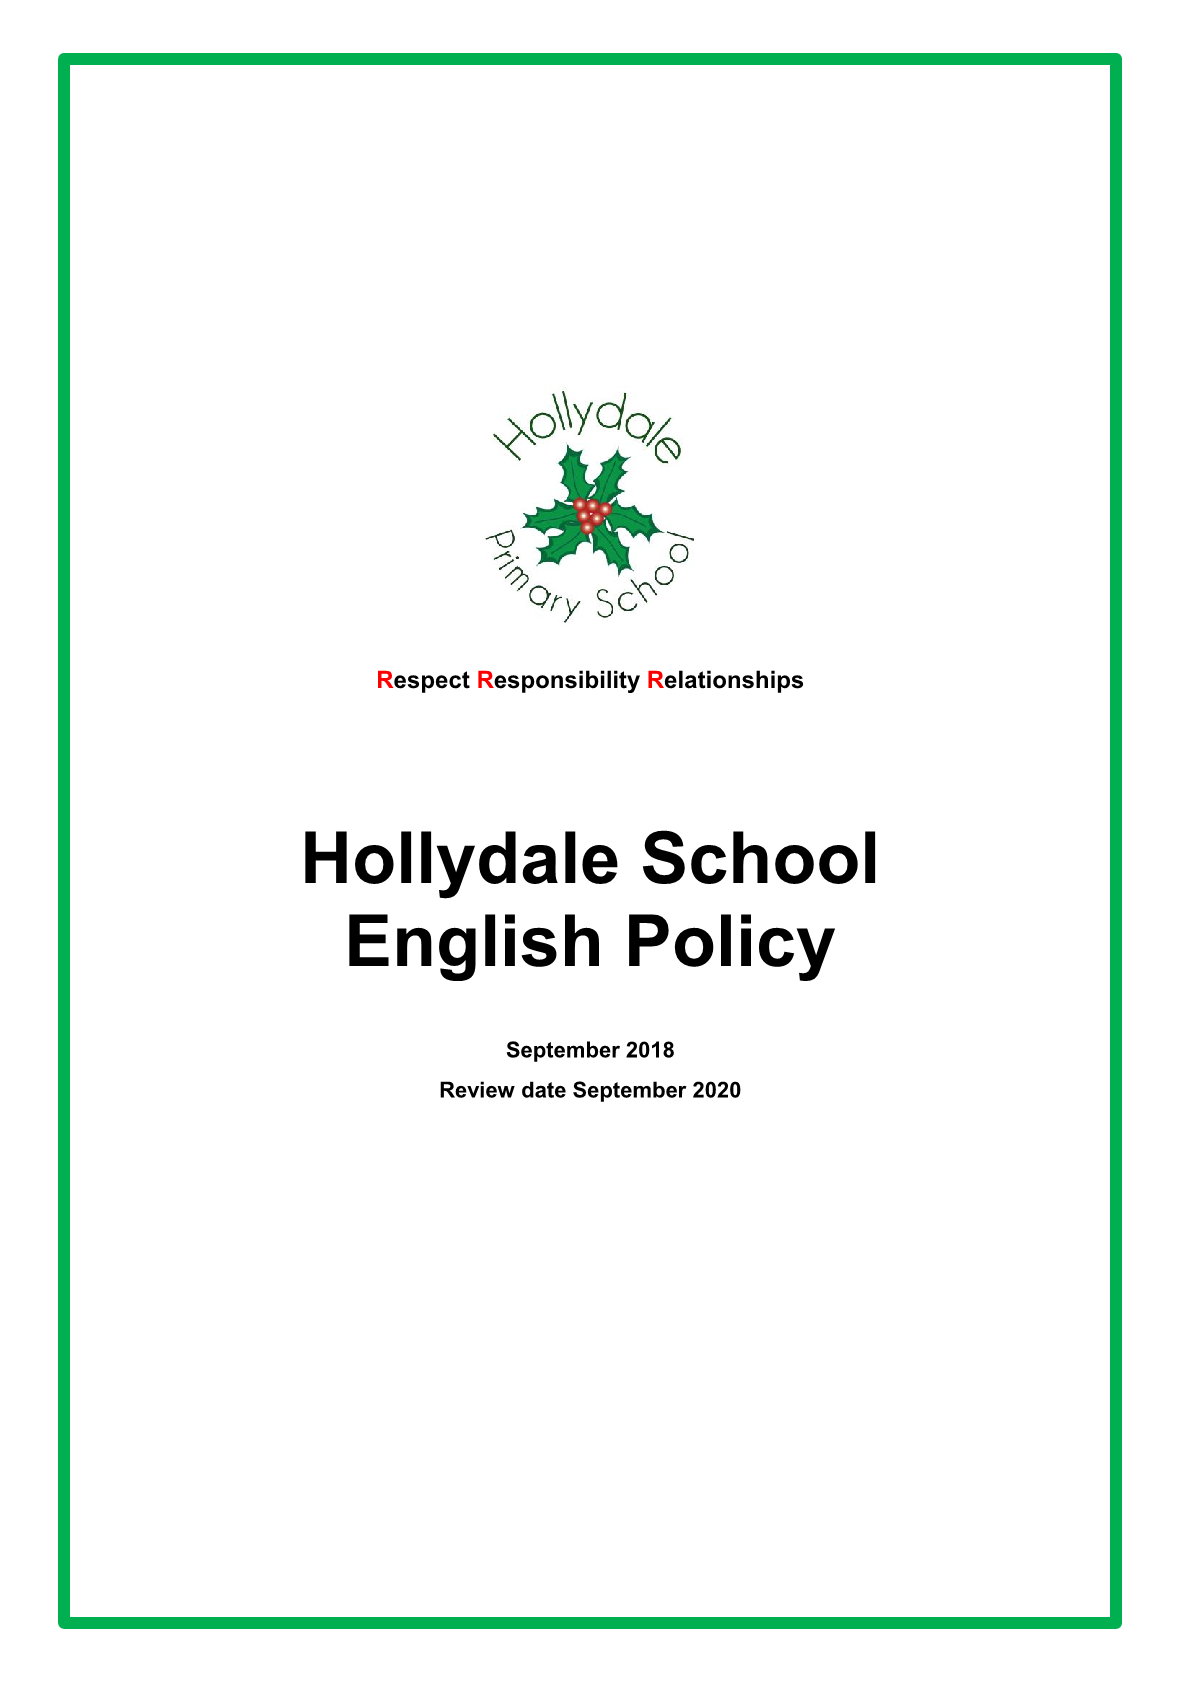 English Policy